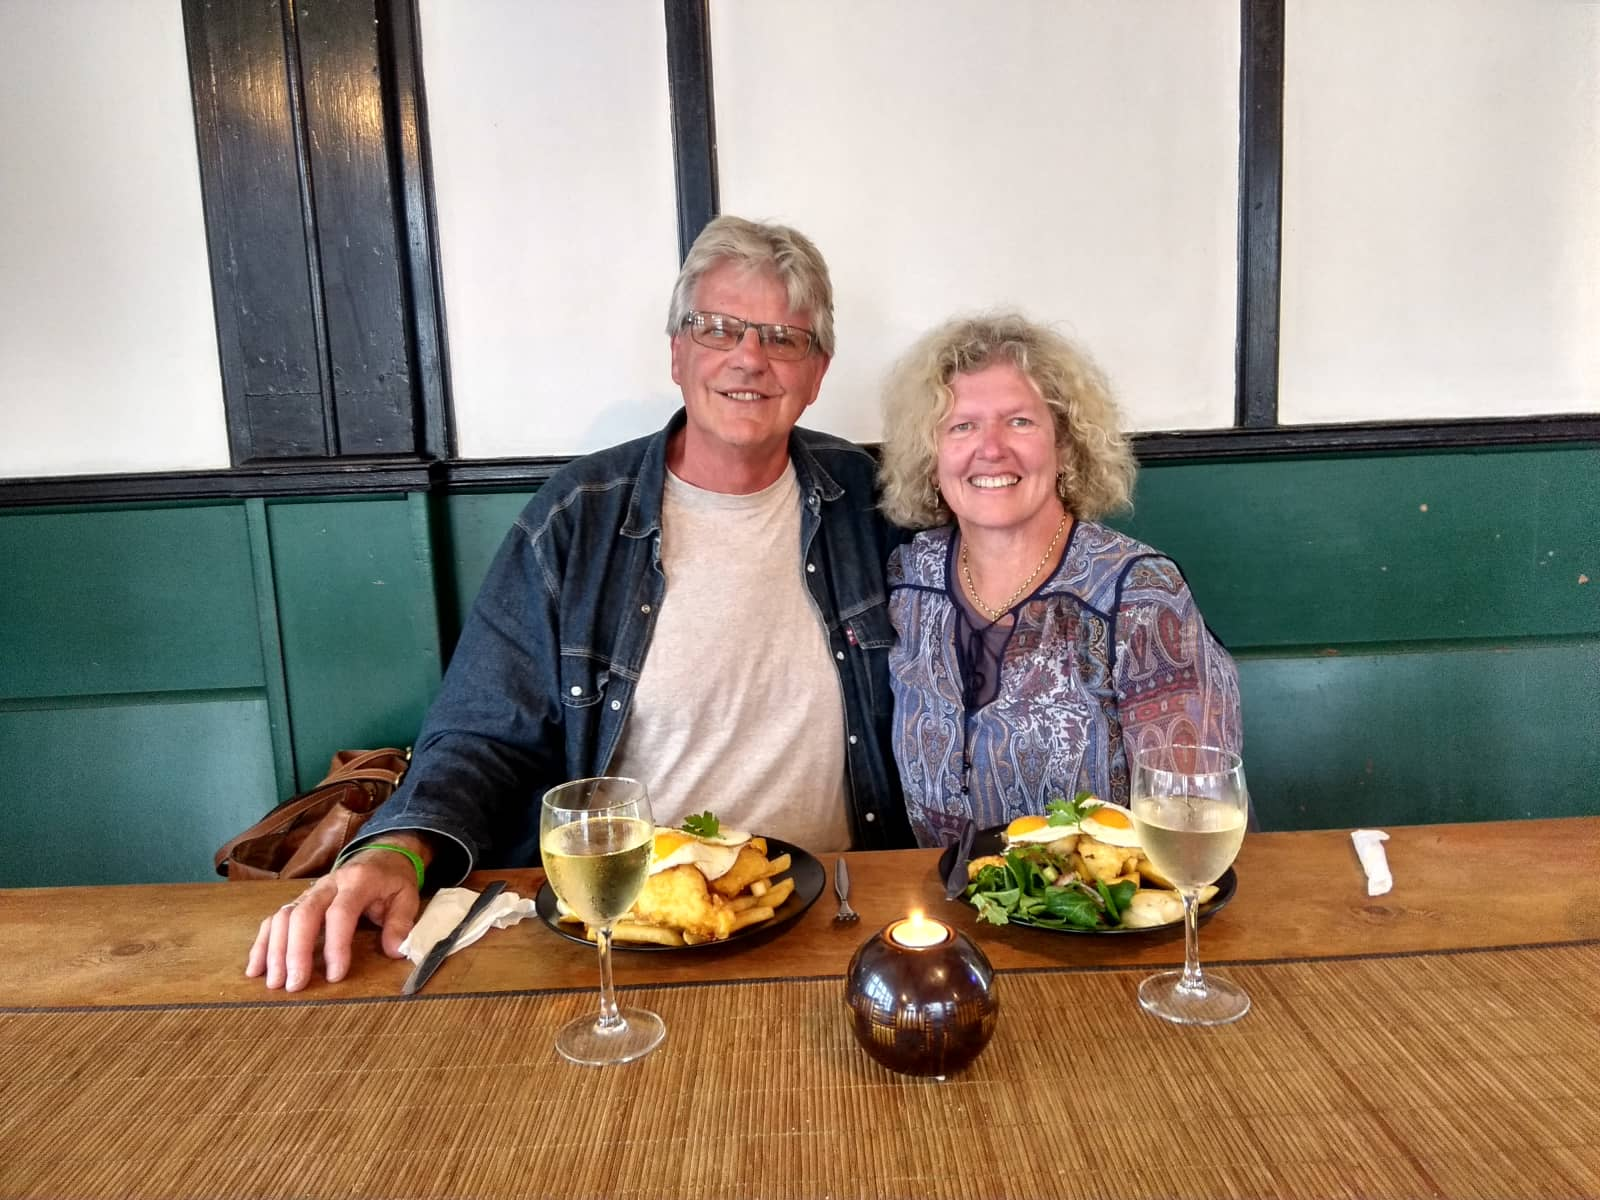 Lois & Mike from Wellington, New Zealand